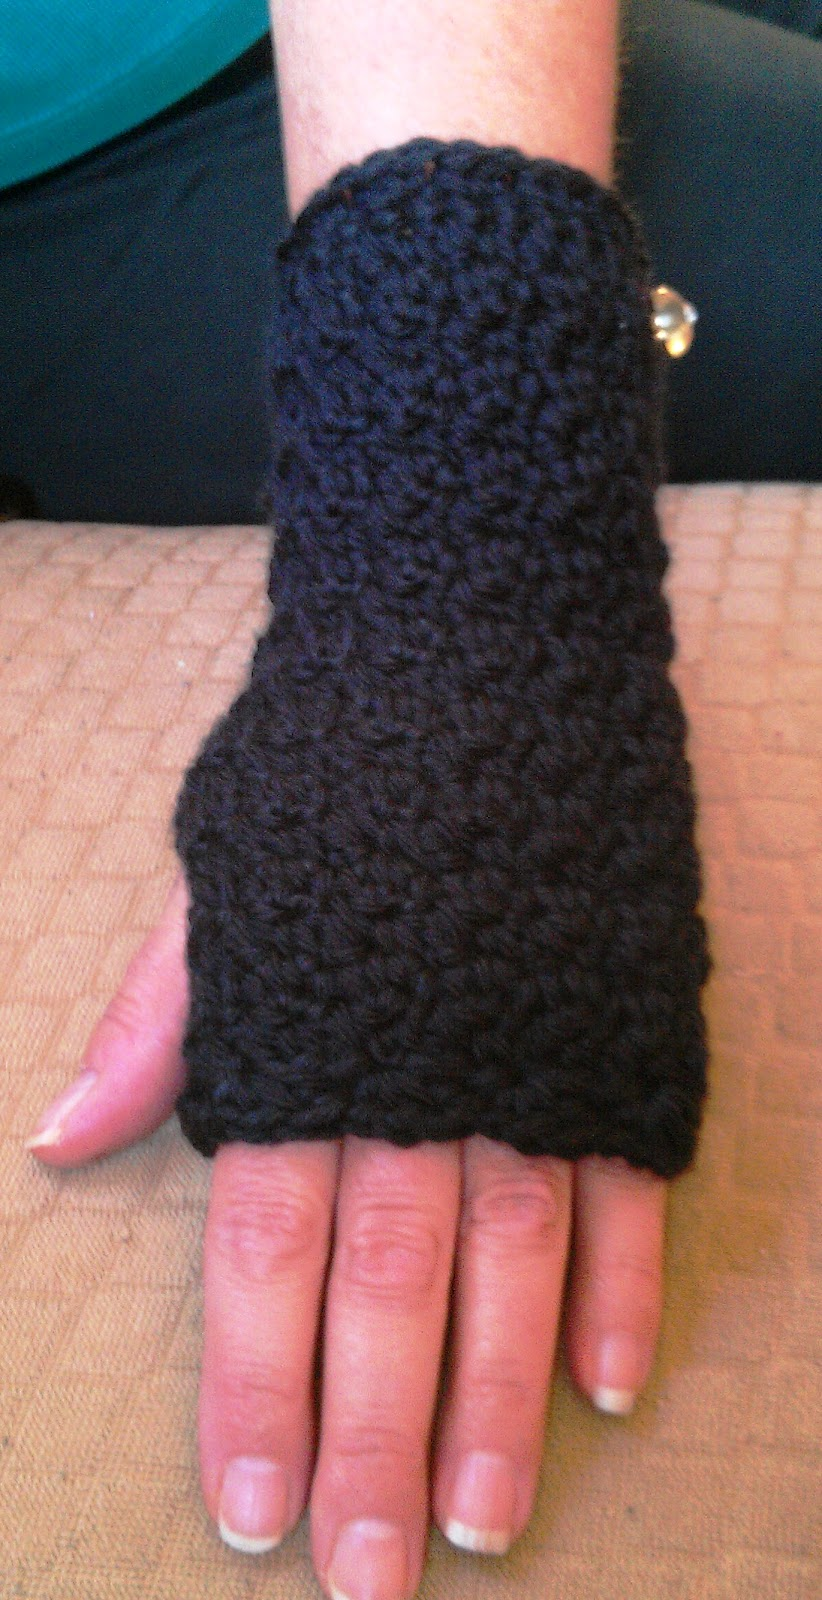 Crocheting By Hand : New Crochet Hand/Wrist Warmers Pattern Cute Crochet